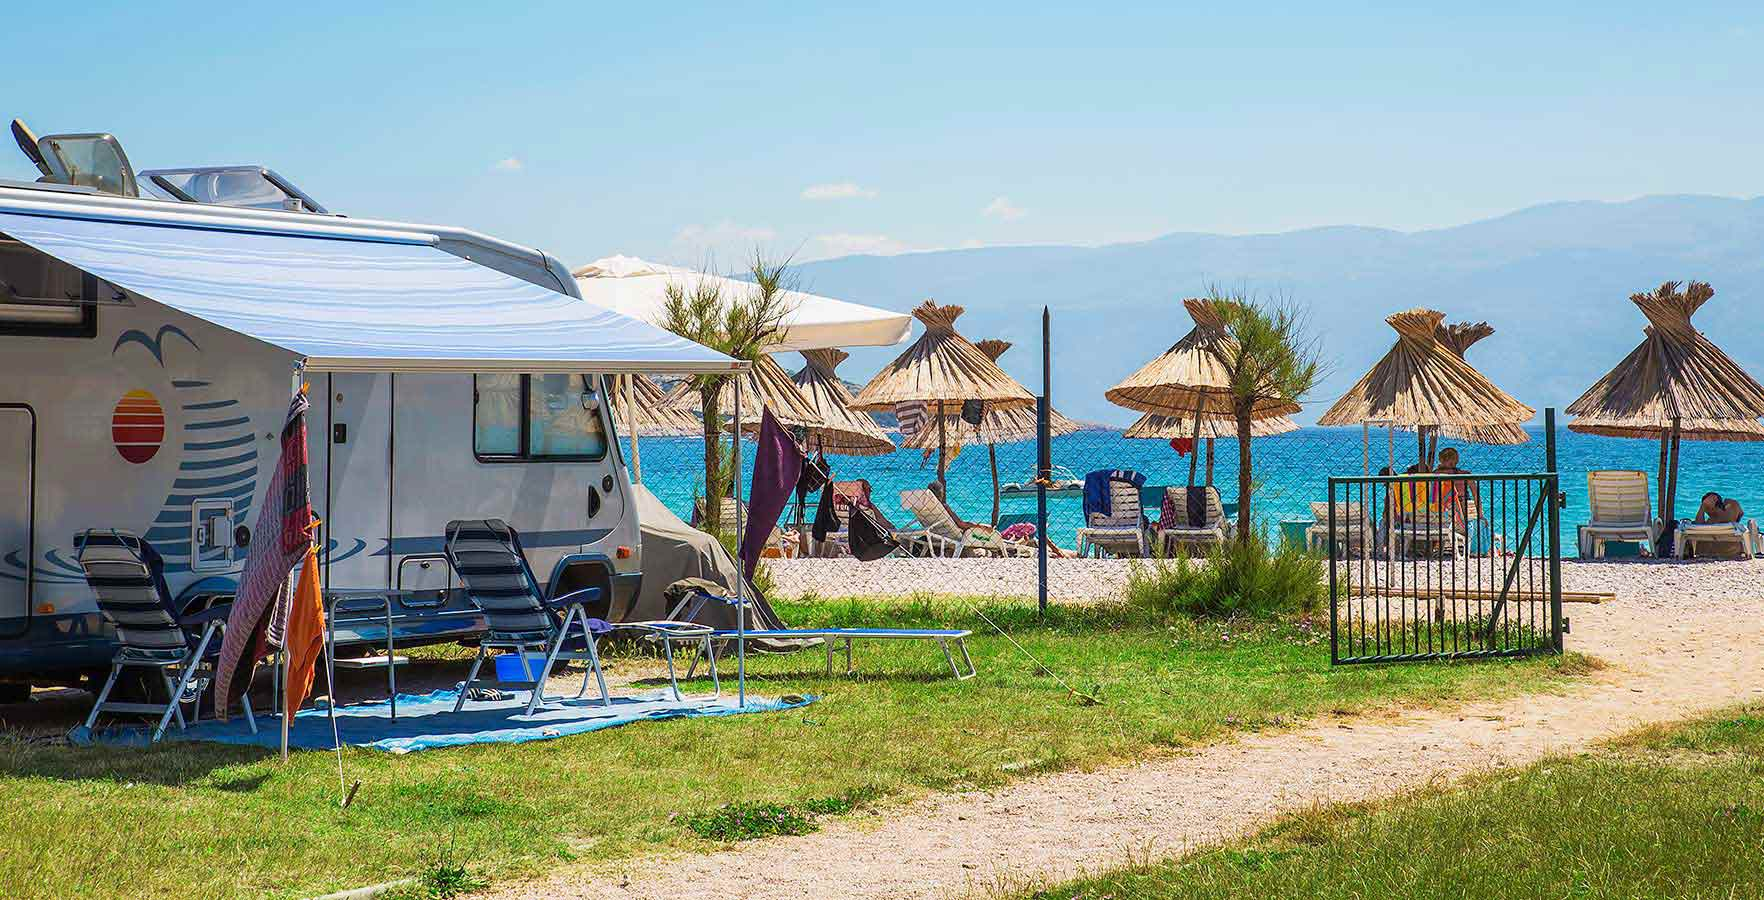 Camp Zablace - camping on the coastline